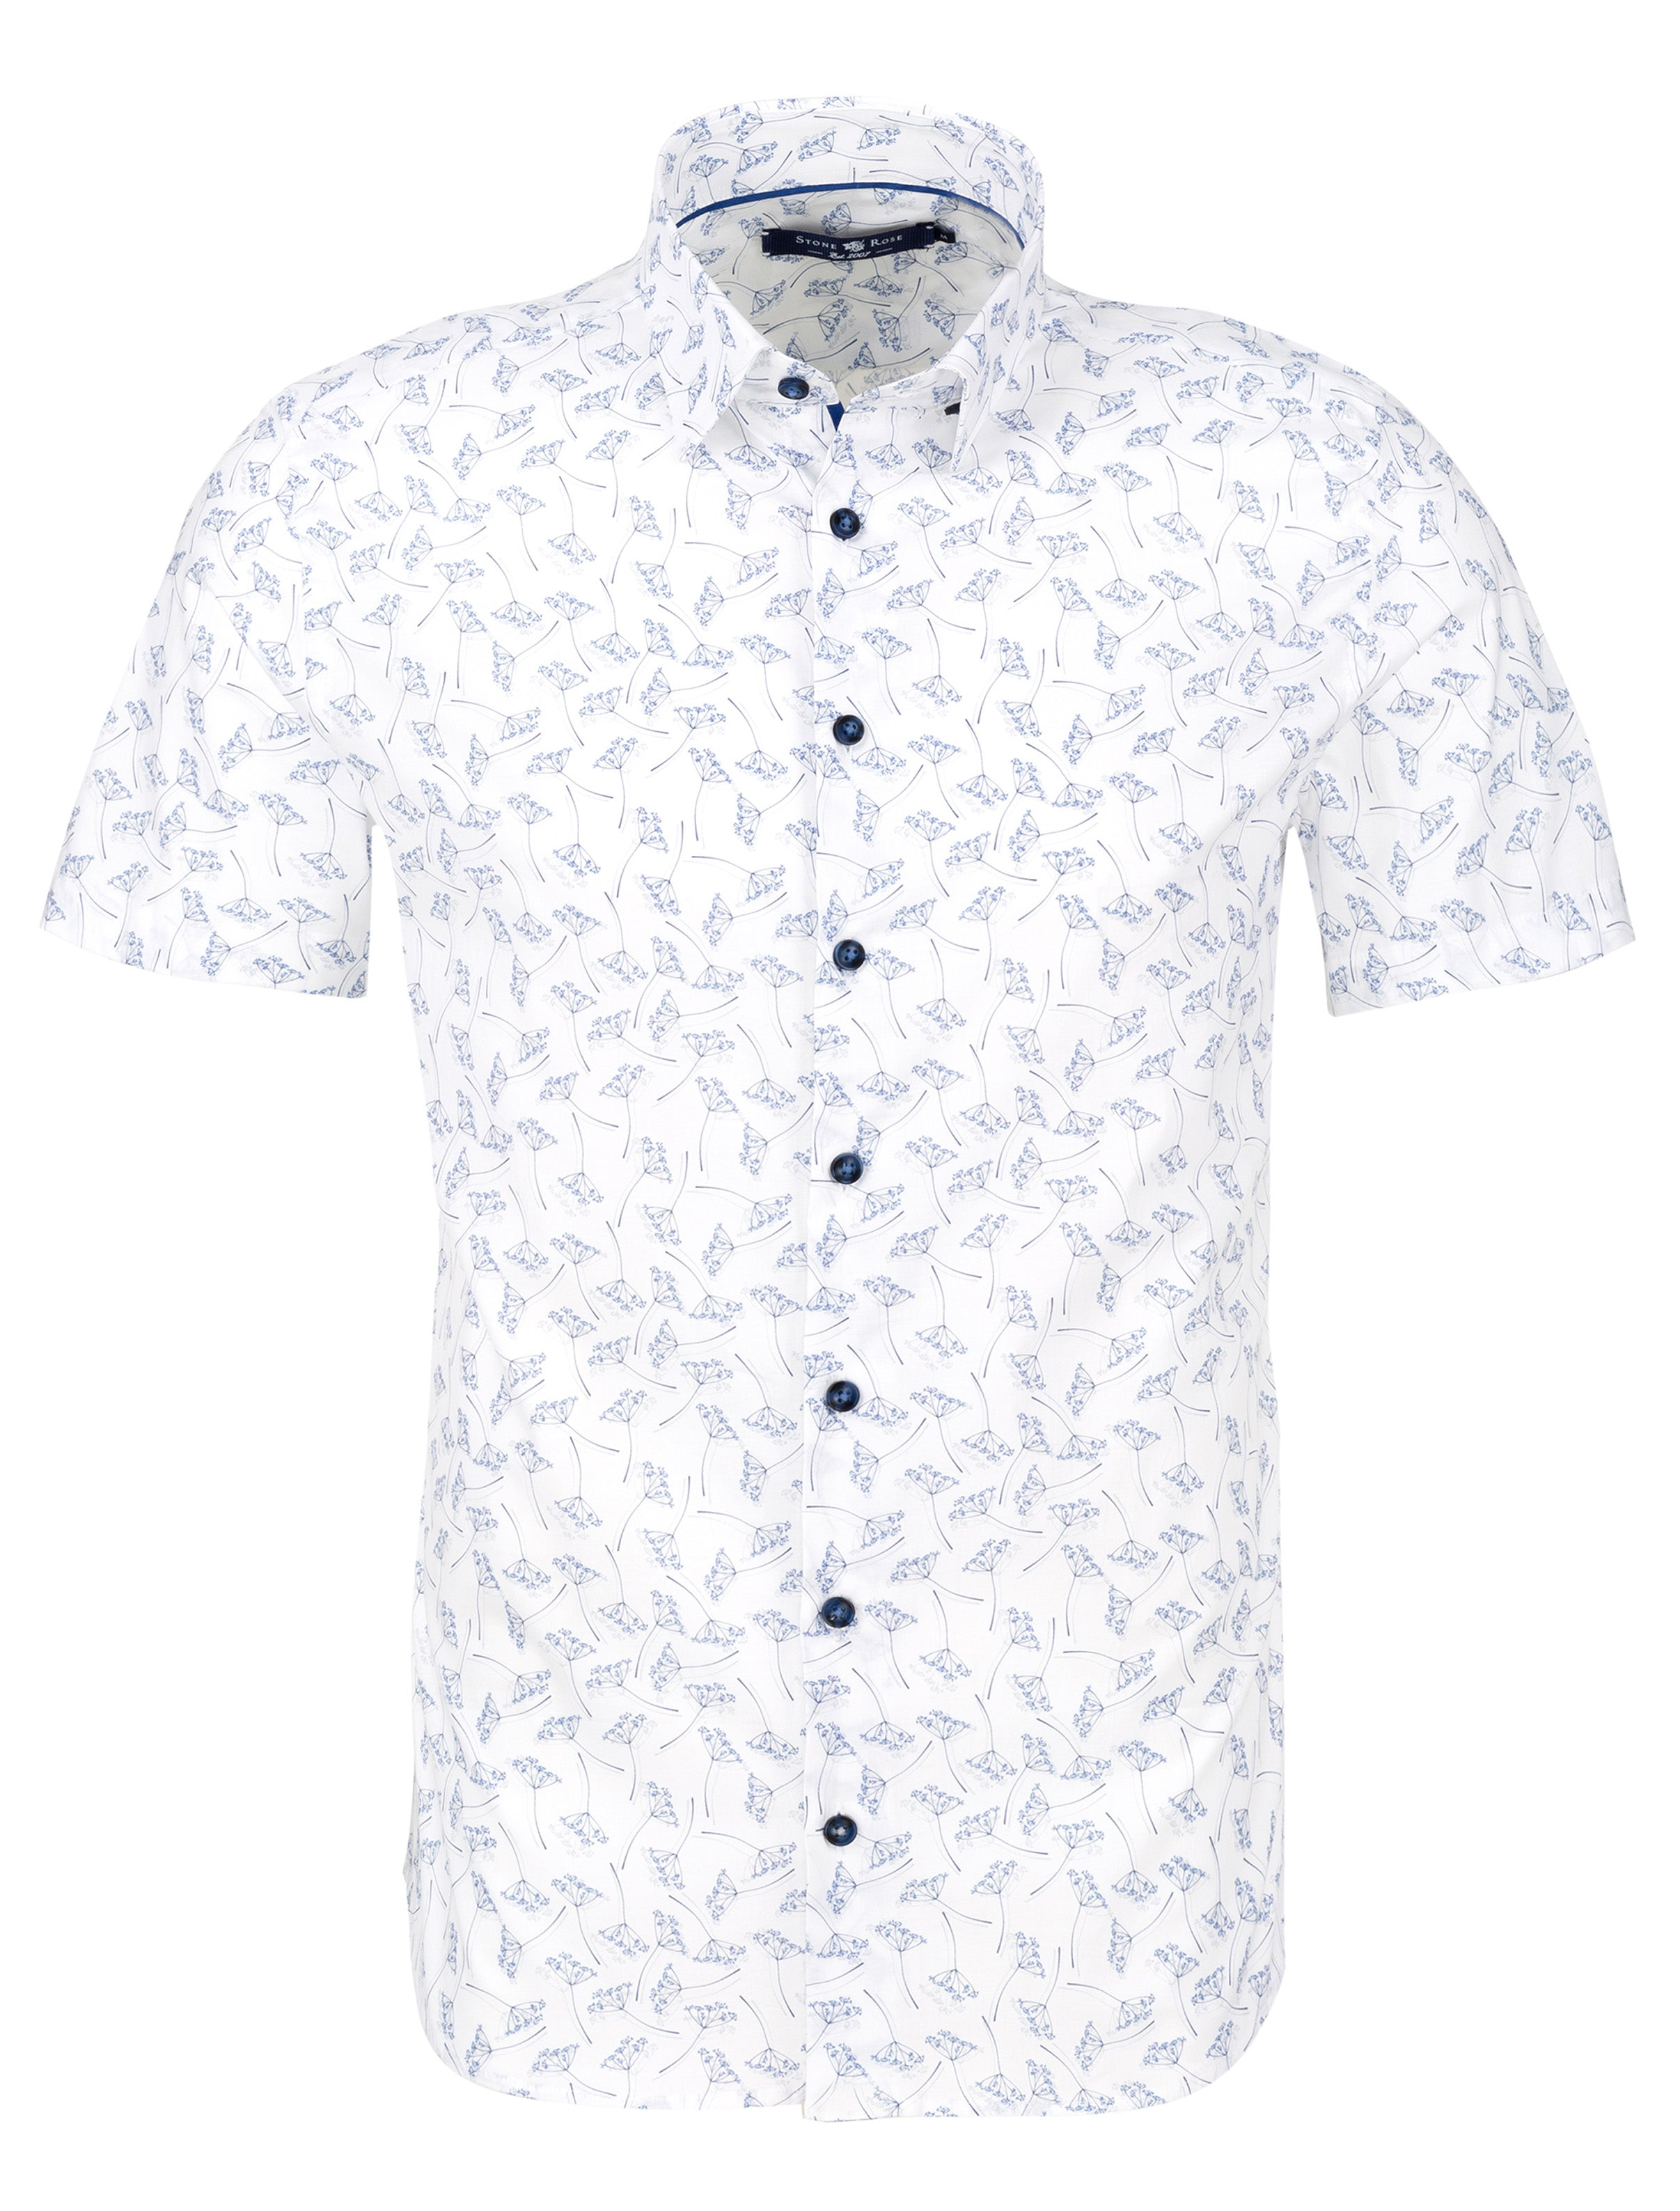 White Novelty Print Short Sleeve Shirt